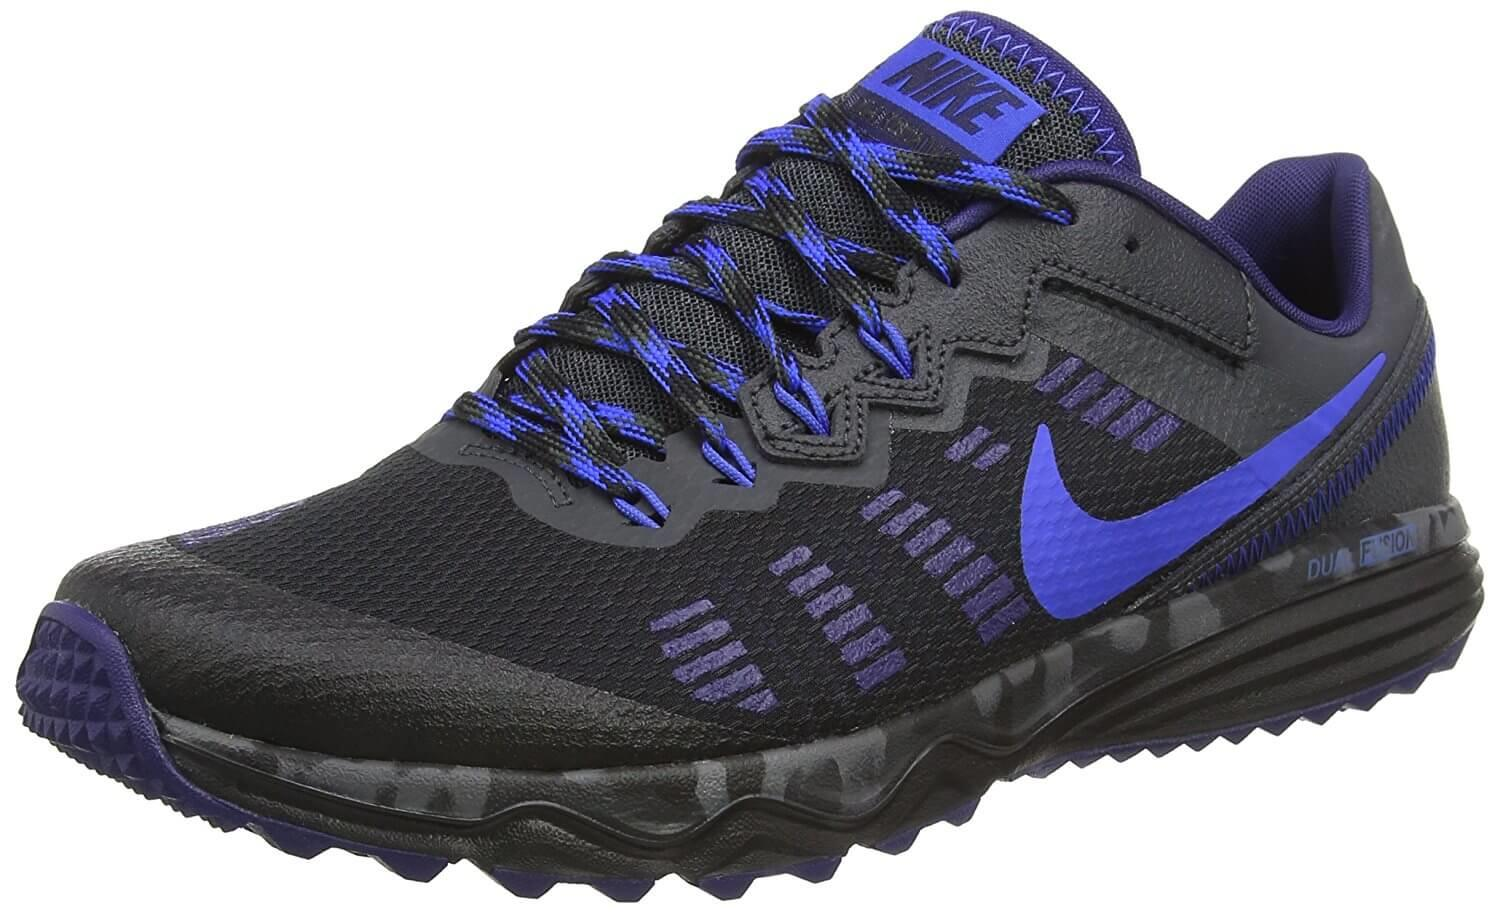 Nike Dual Fusion Trail 2 Fully Reviewed 1